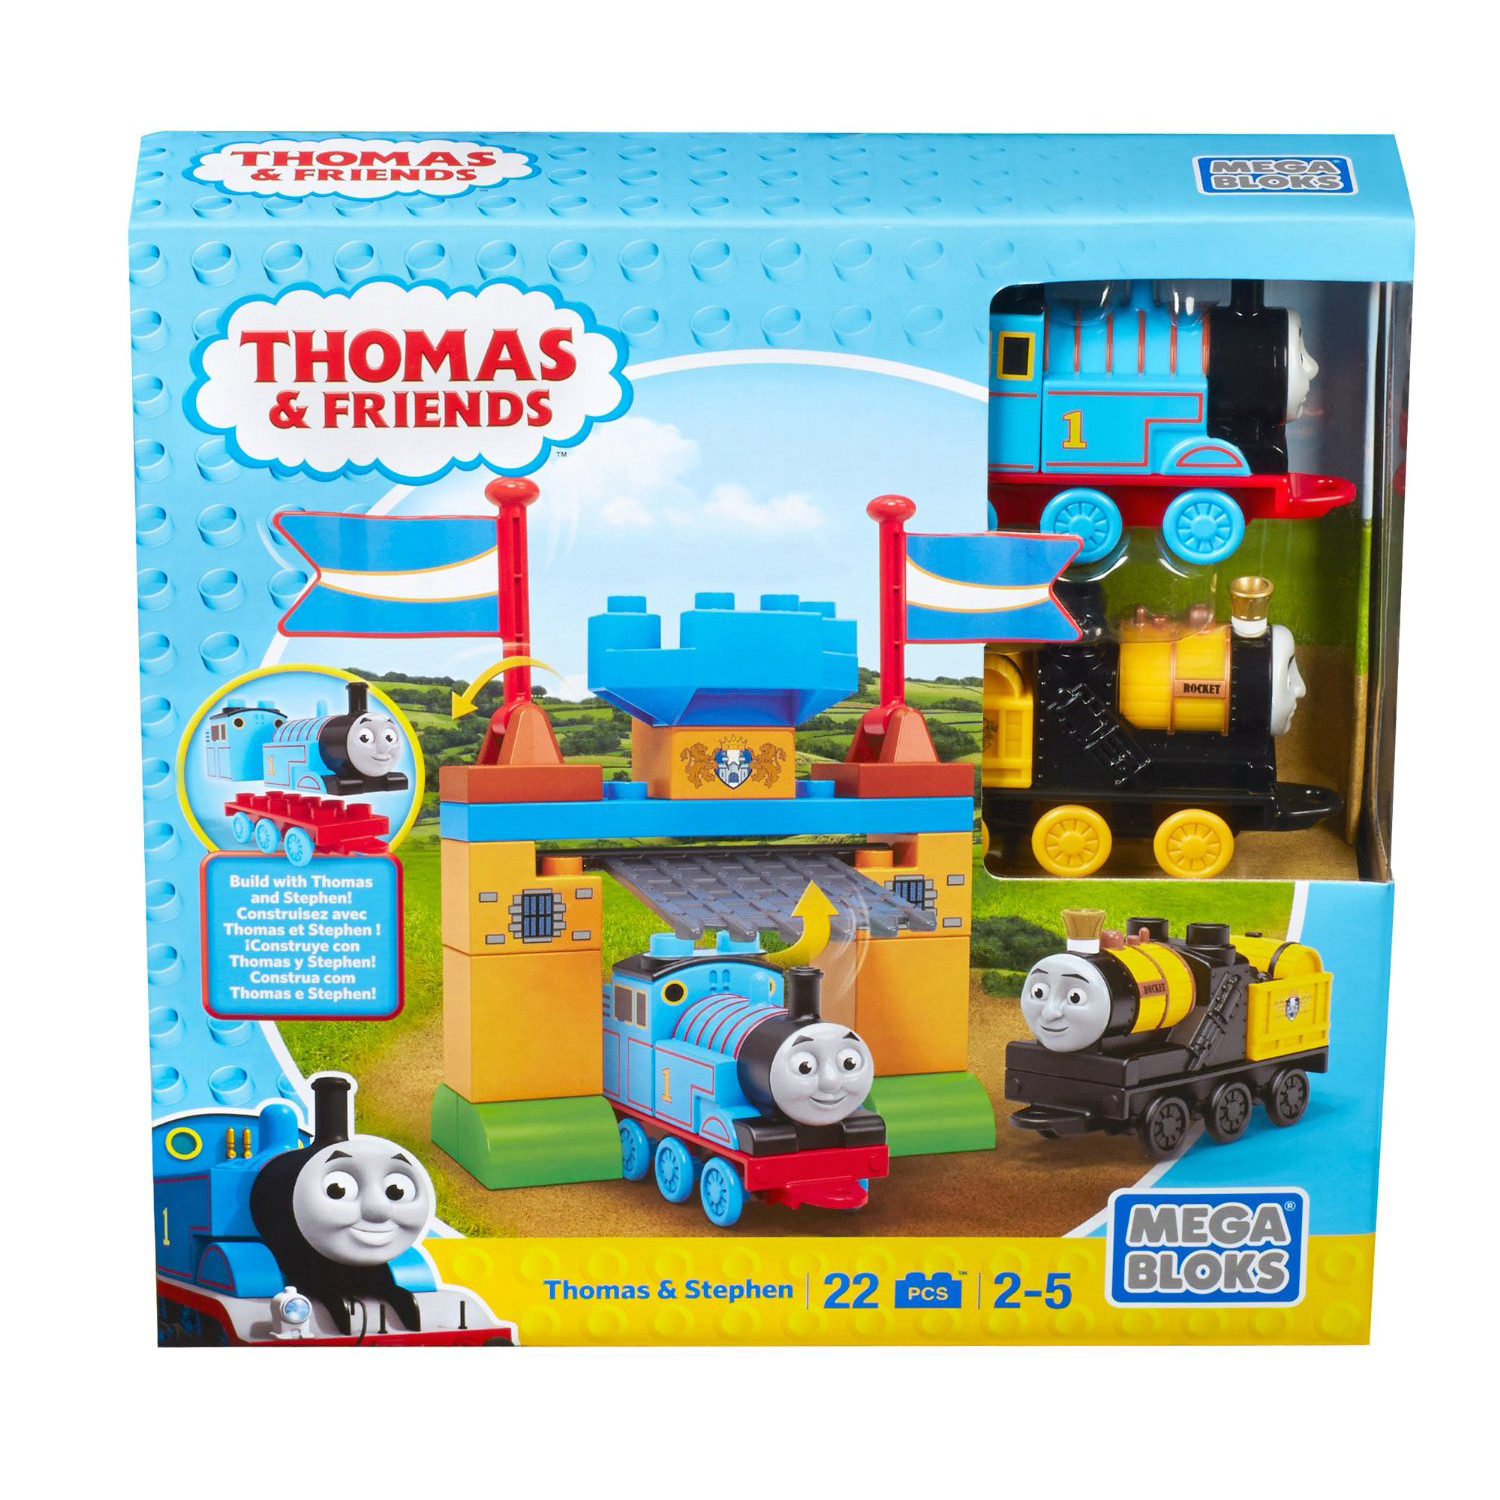 Mega Bloks Thomas Amp Friends Thomas Amp Stephen Playset At